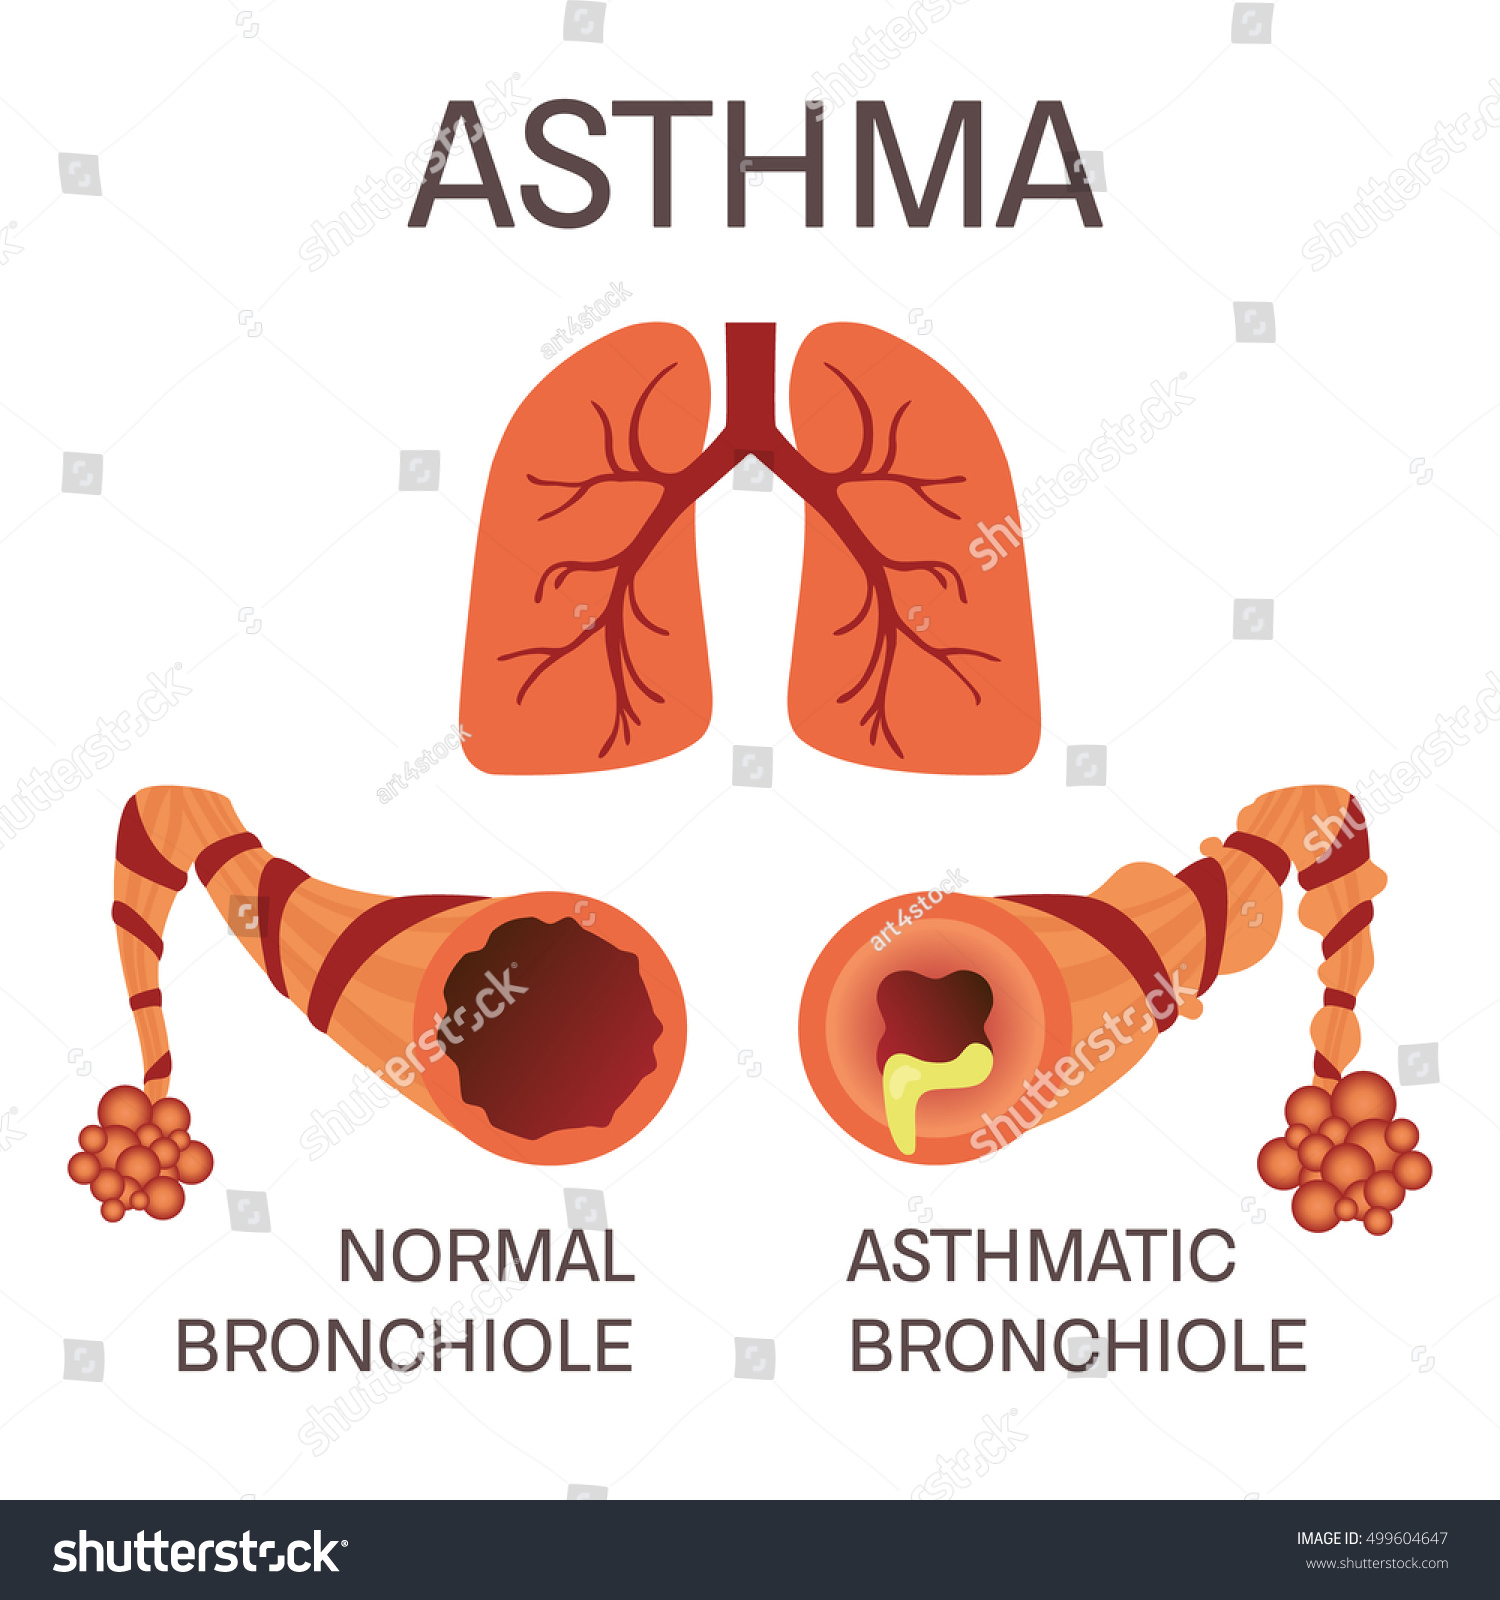 asthma dating sites Disabled dating 4 u::register today to connect to other disabled single members.